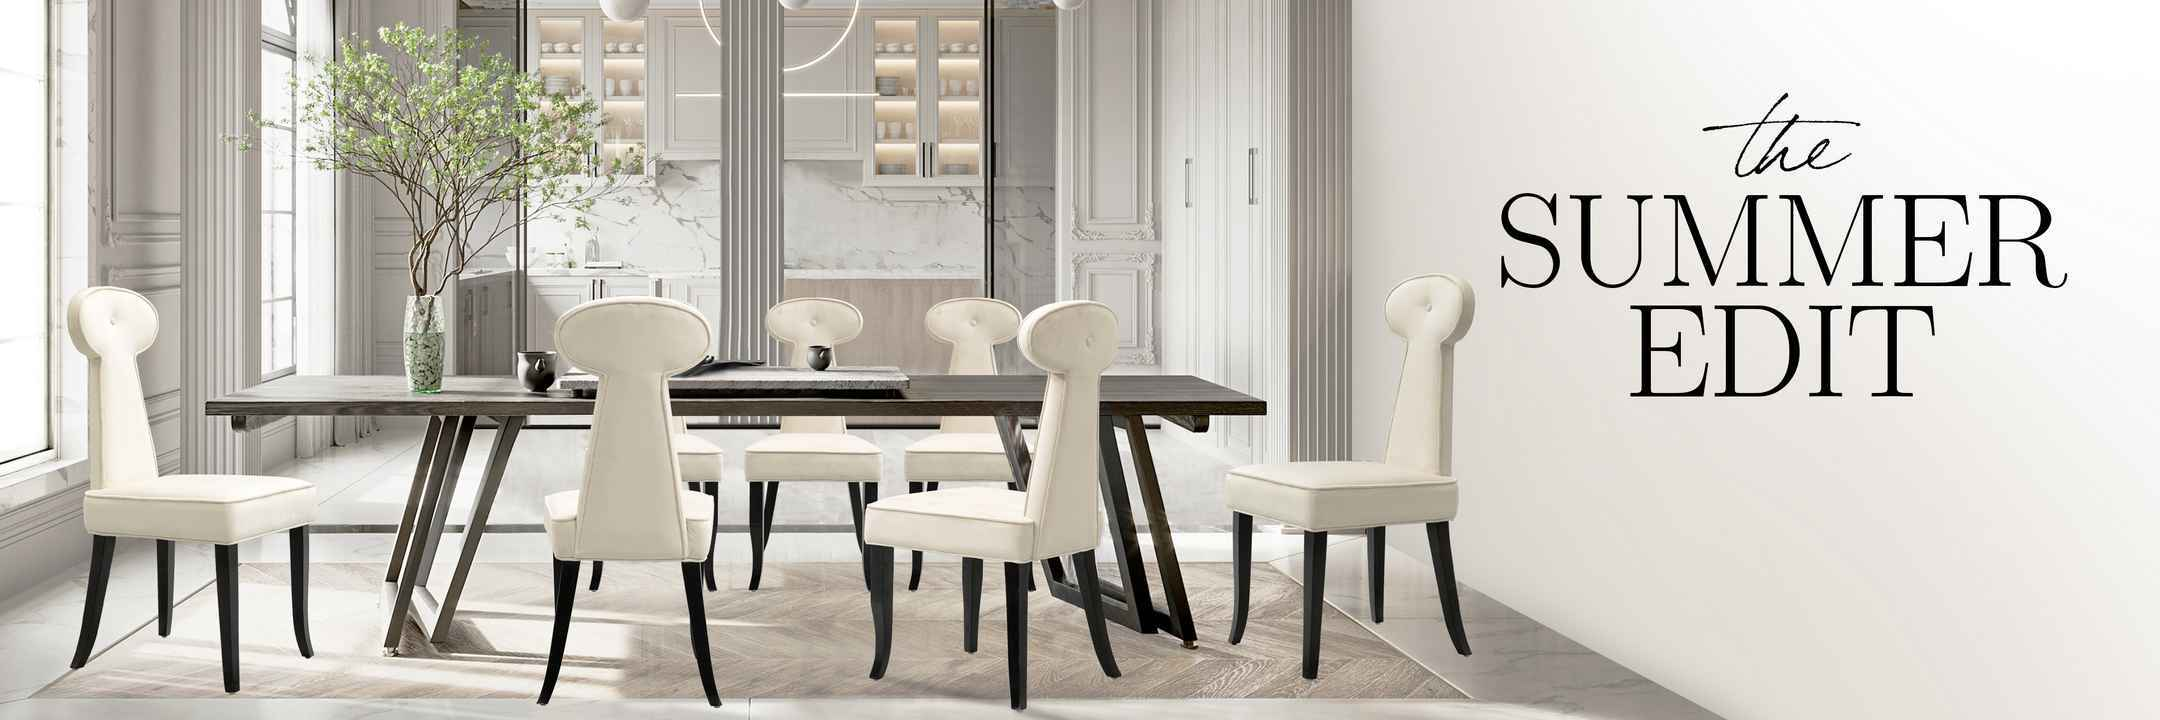 A dining table surrounded by dining chairs